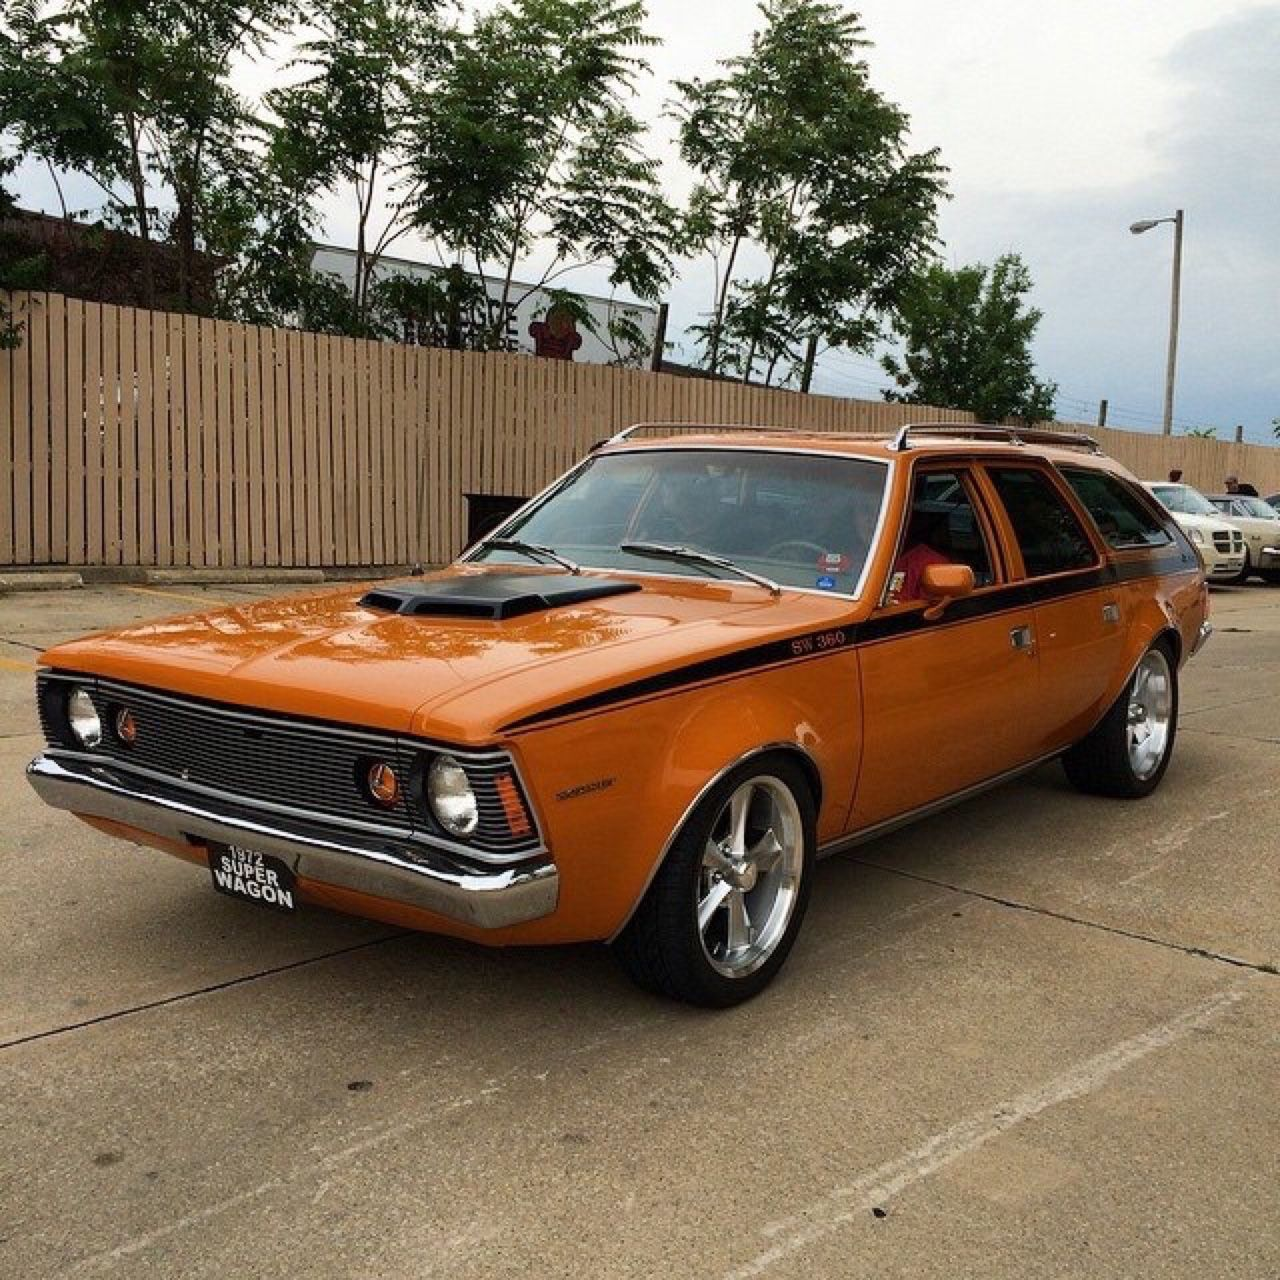 1972 Amc Hornet Sportabout Wagon Station Wagon Cars Classic Cars Muscle Wagon Cars